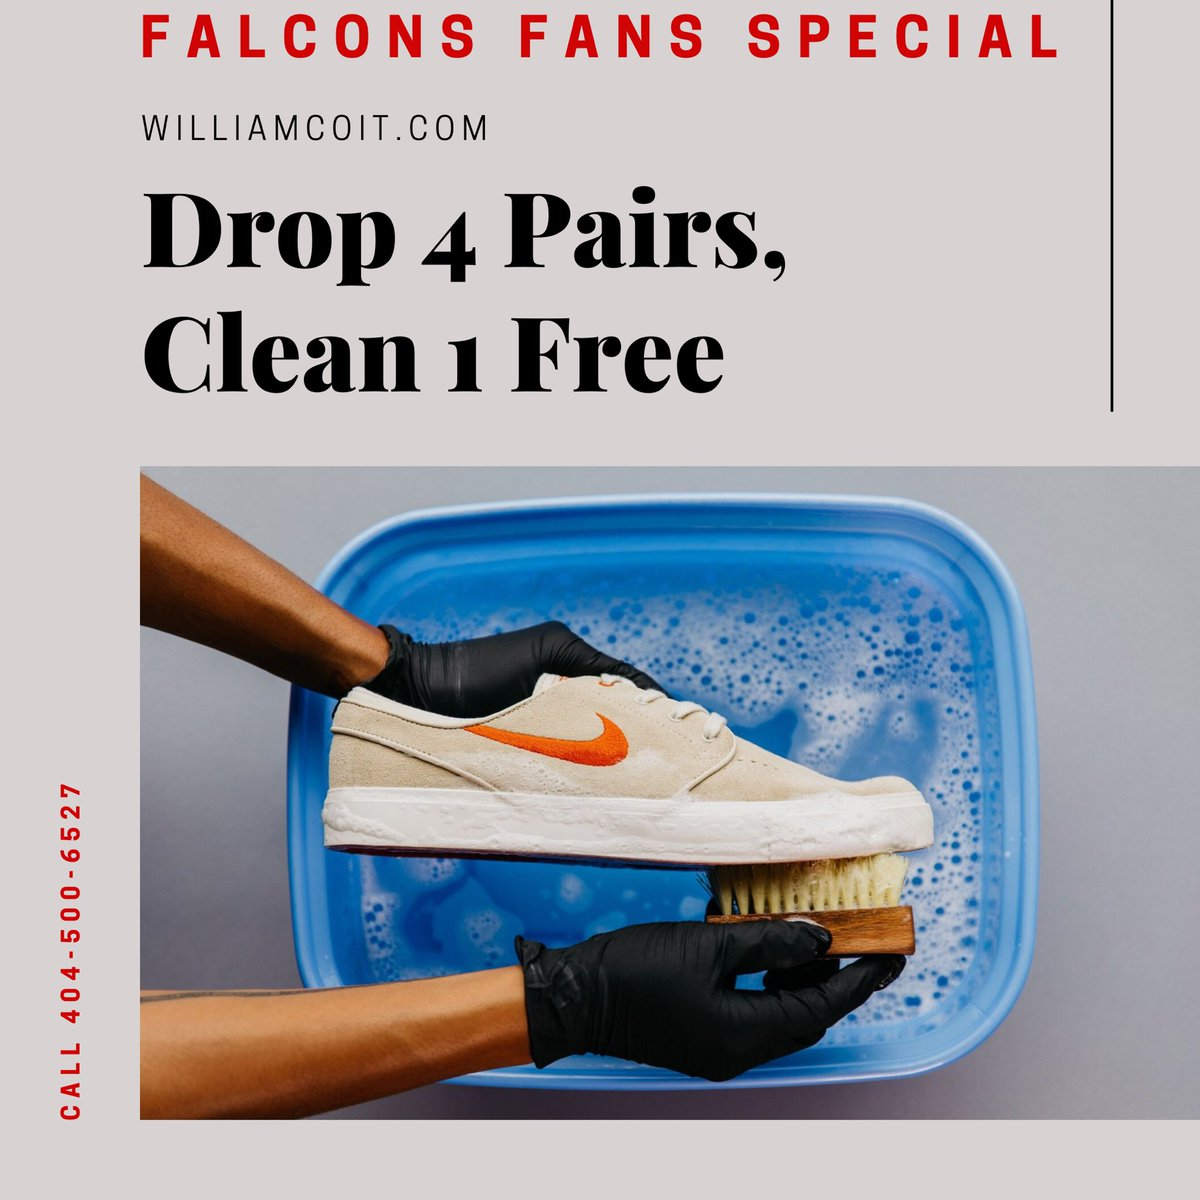 Have Dirty Sneakers or Golf Shoes? Call or Text 404-500-6527 . https://t.co/ssuS4BLWvT . #atlanta #atlantafalcons #atlantahawks  #atlantaunited #sneakers #braves #hawks #sneakerheads #falcons #atlantabraves #ATLUTD https://t.co/ClFrpbrnWr